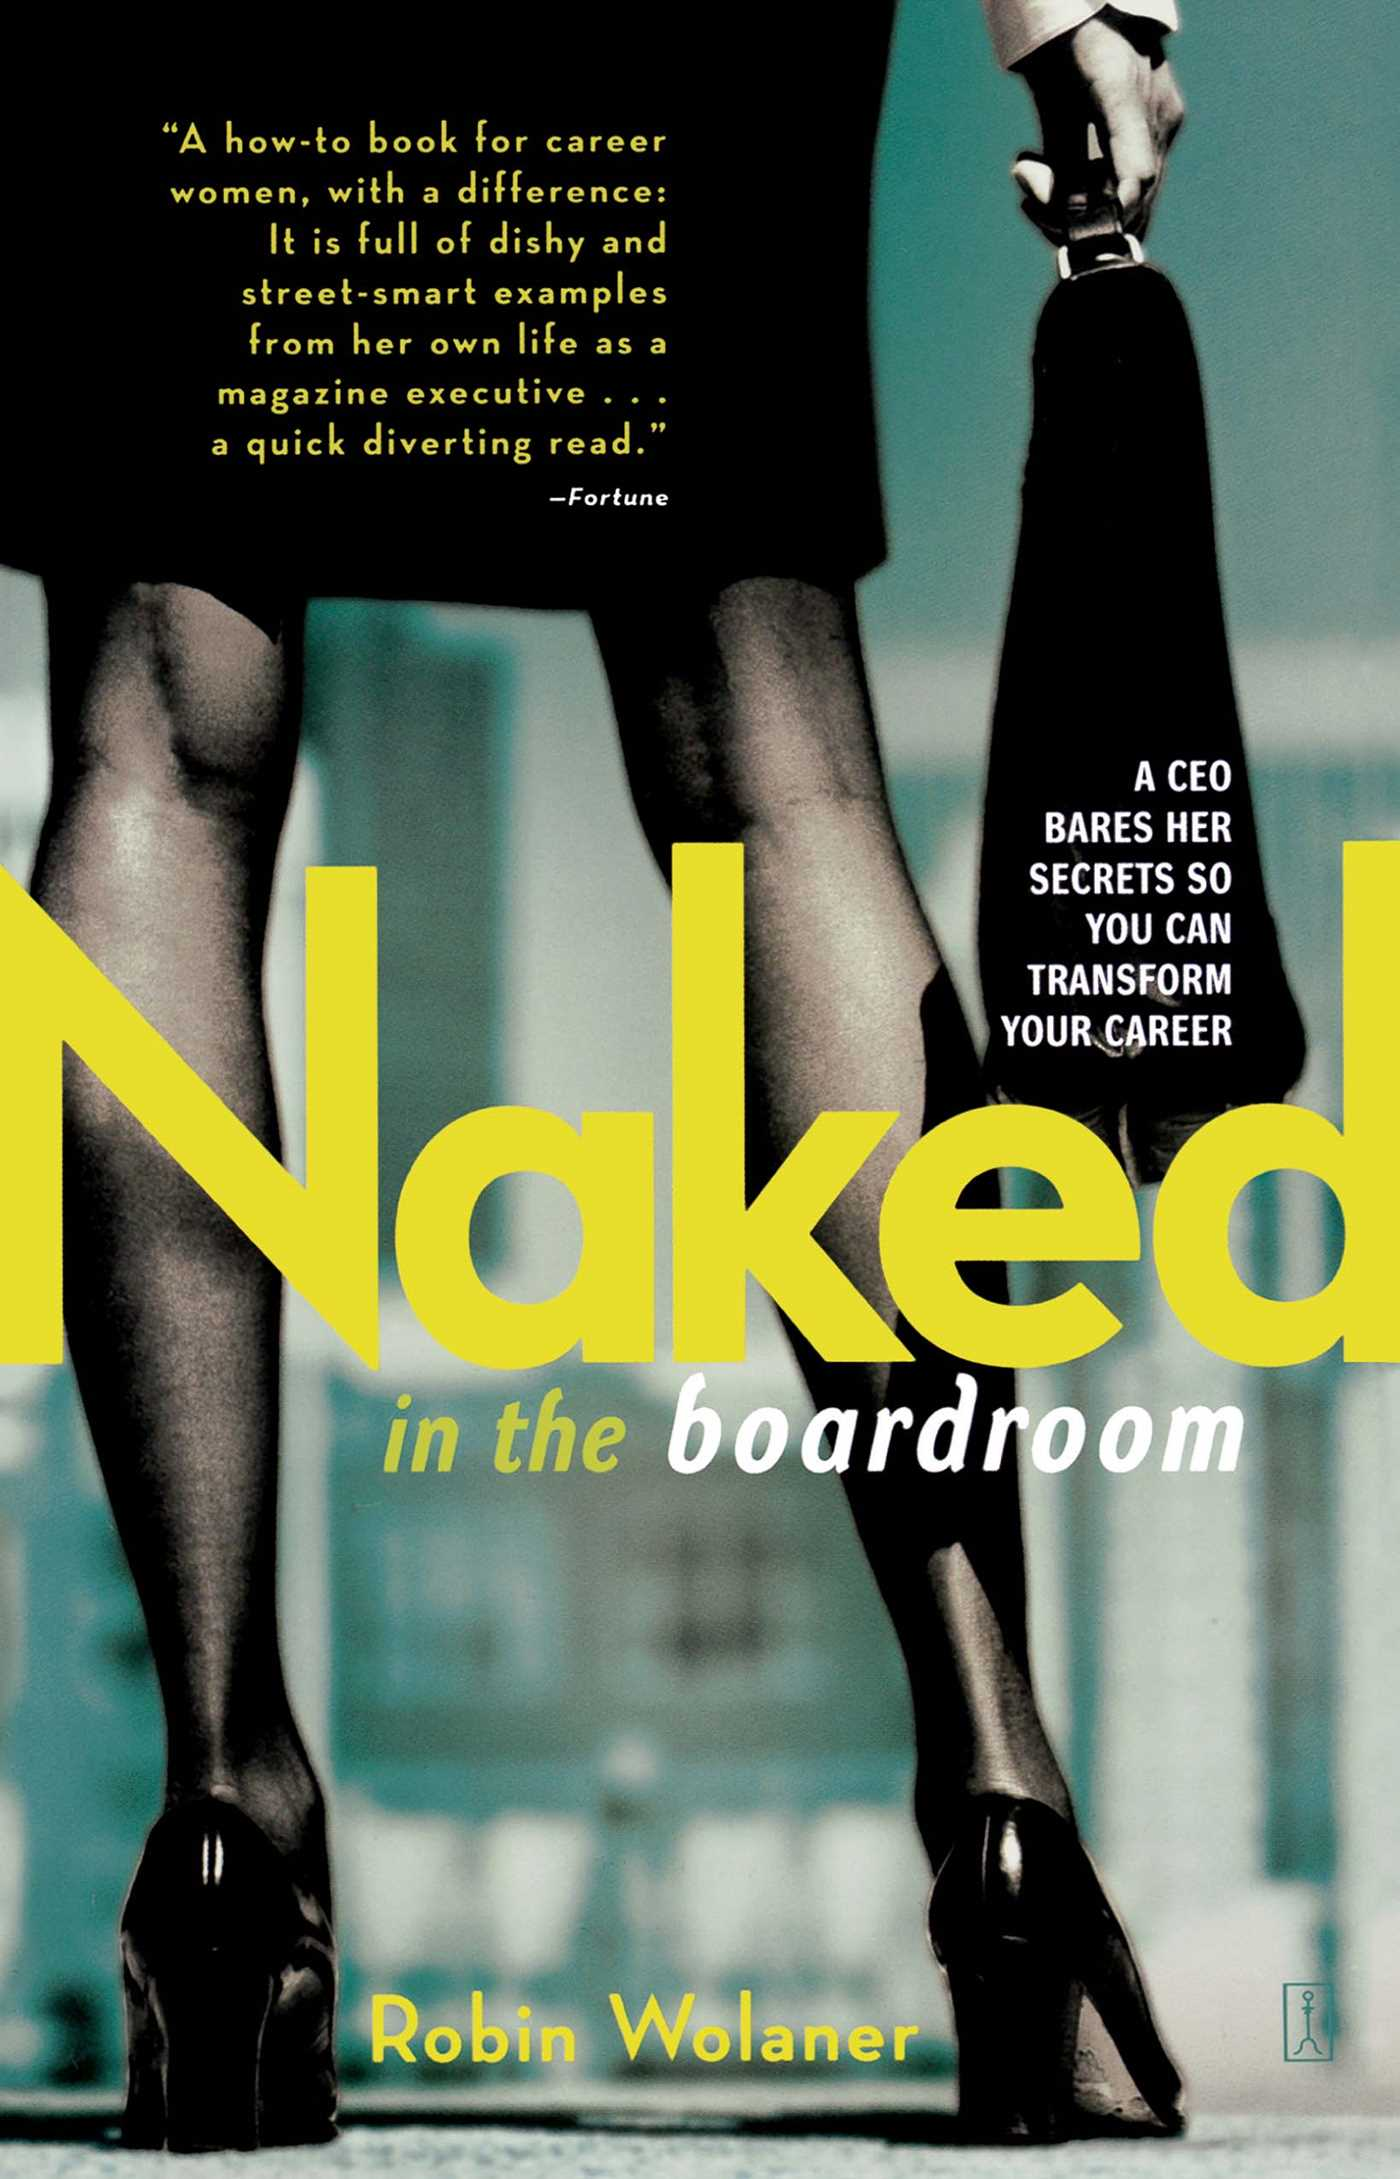 Naked-in-the-boardroom-9780743282840_hr